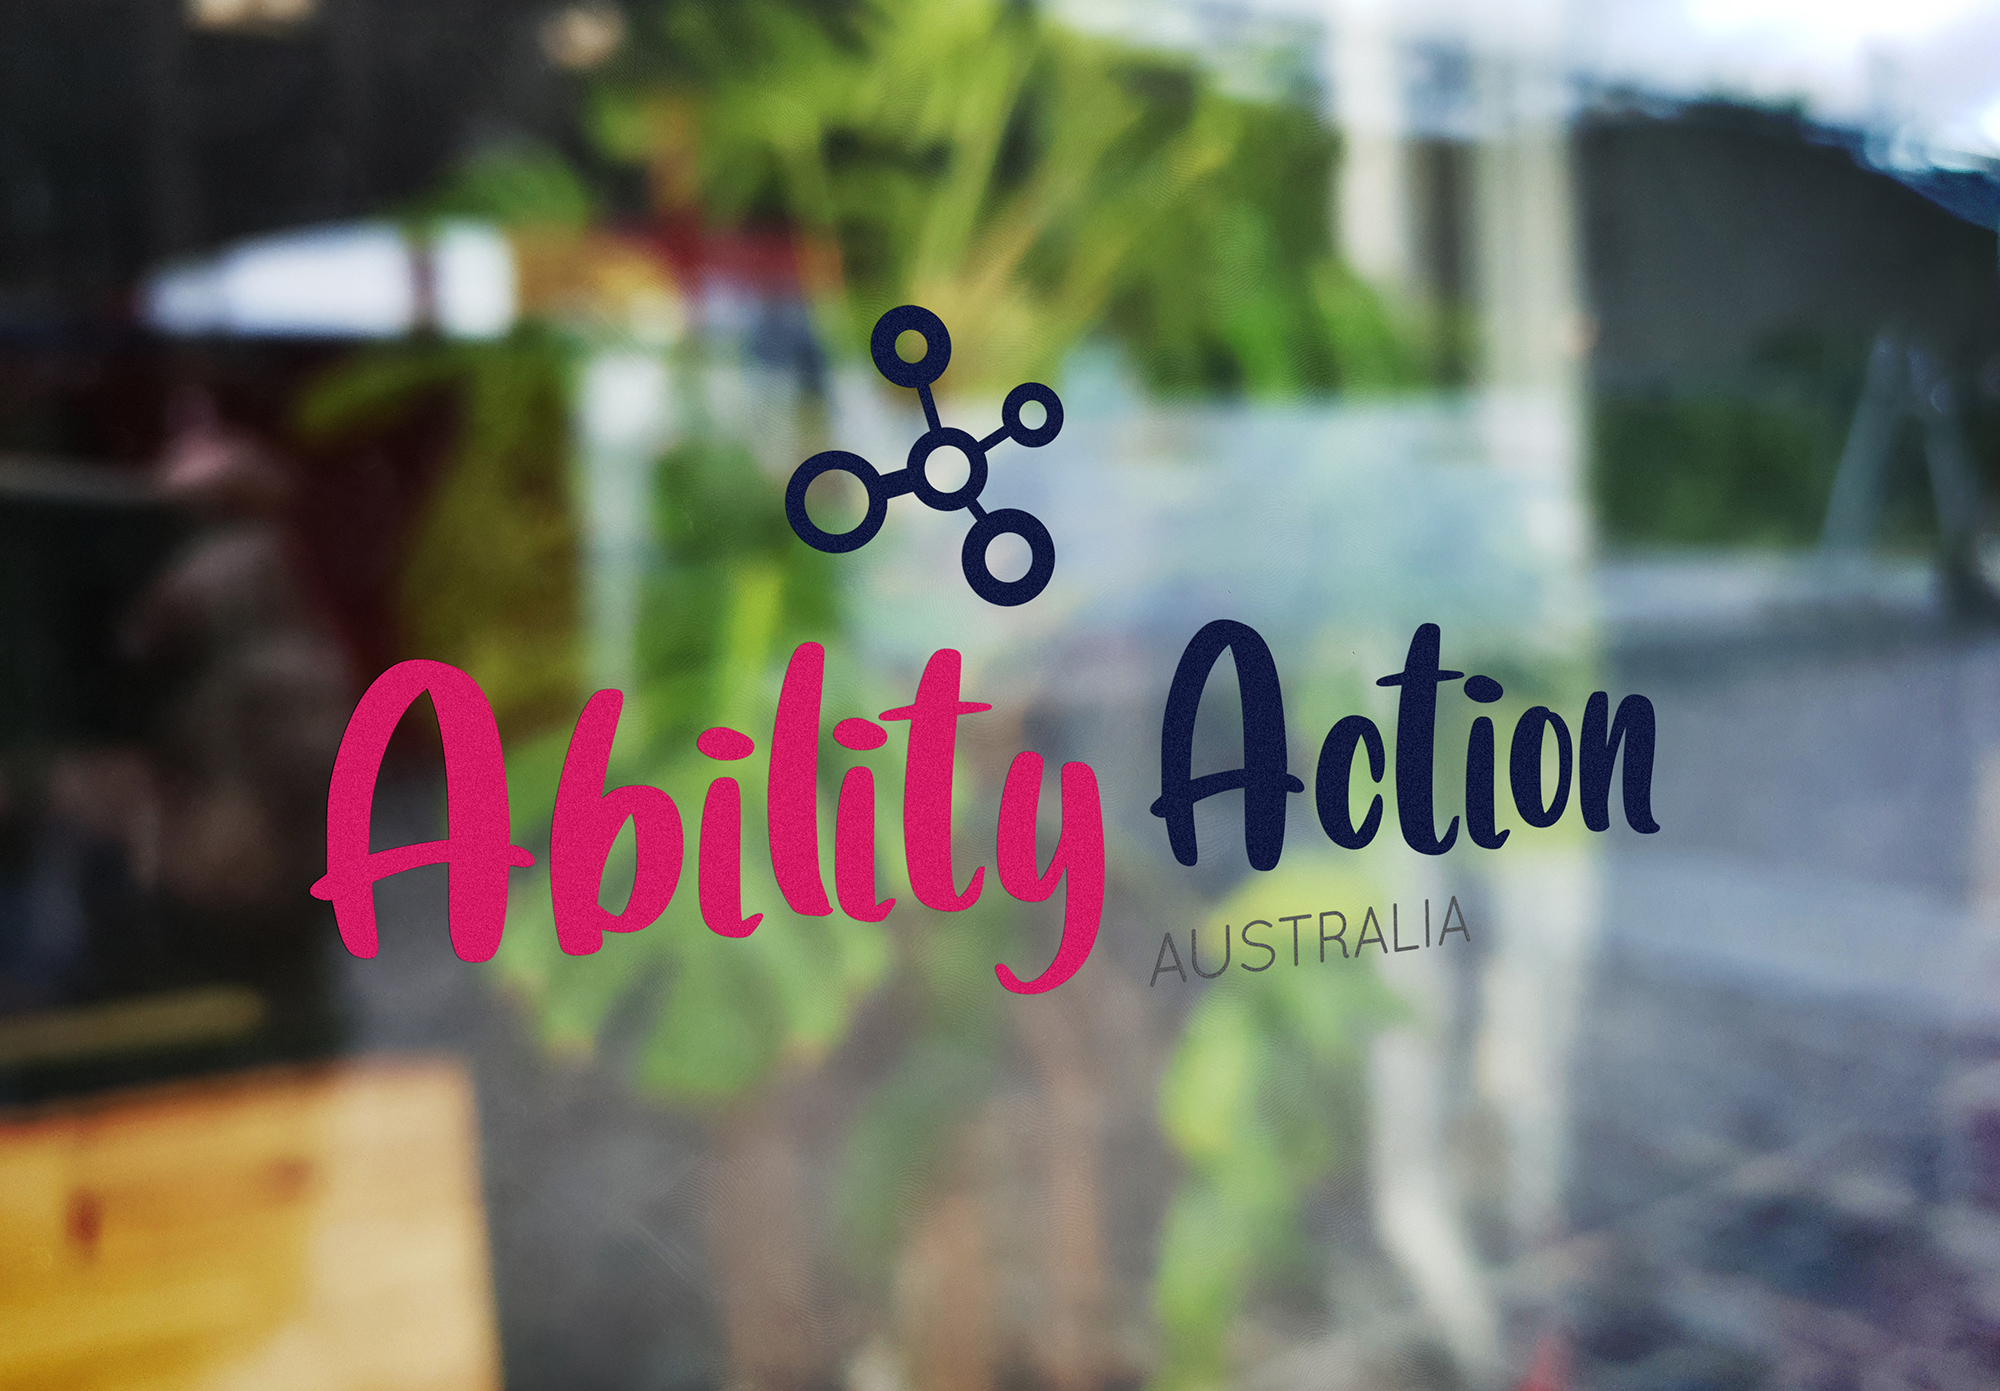 Ability Action Australia logo on window